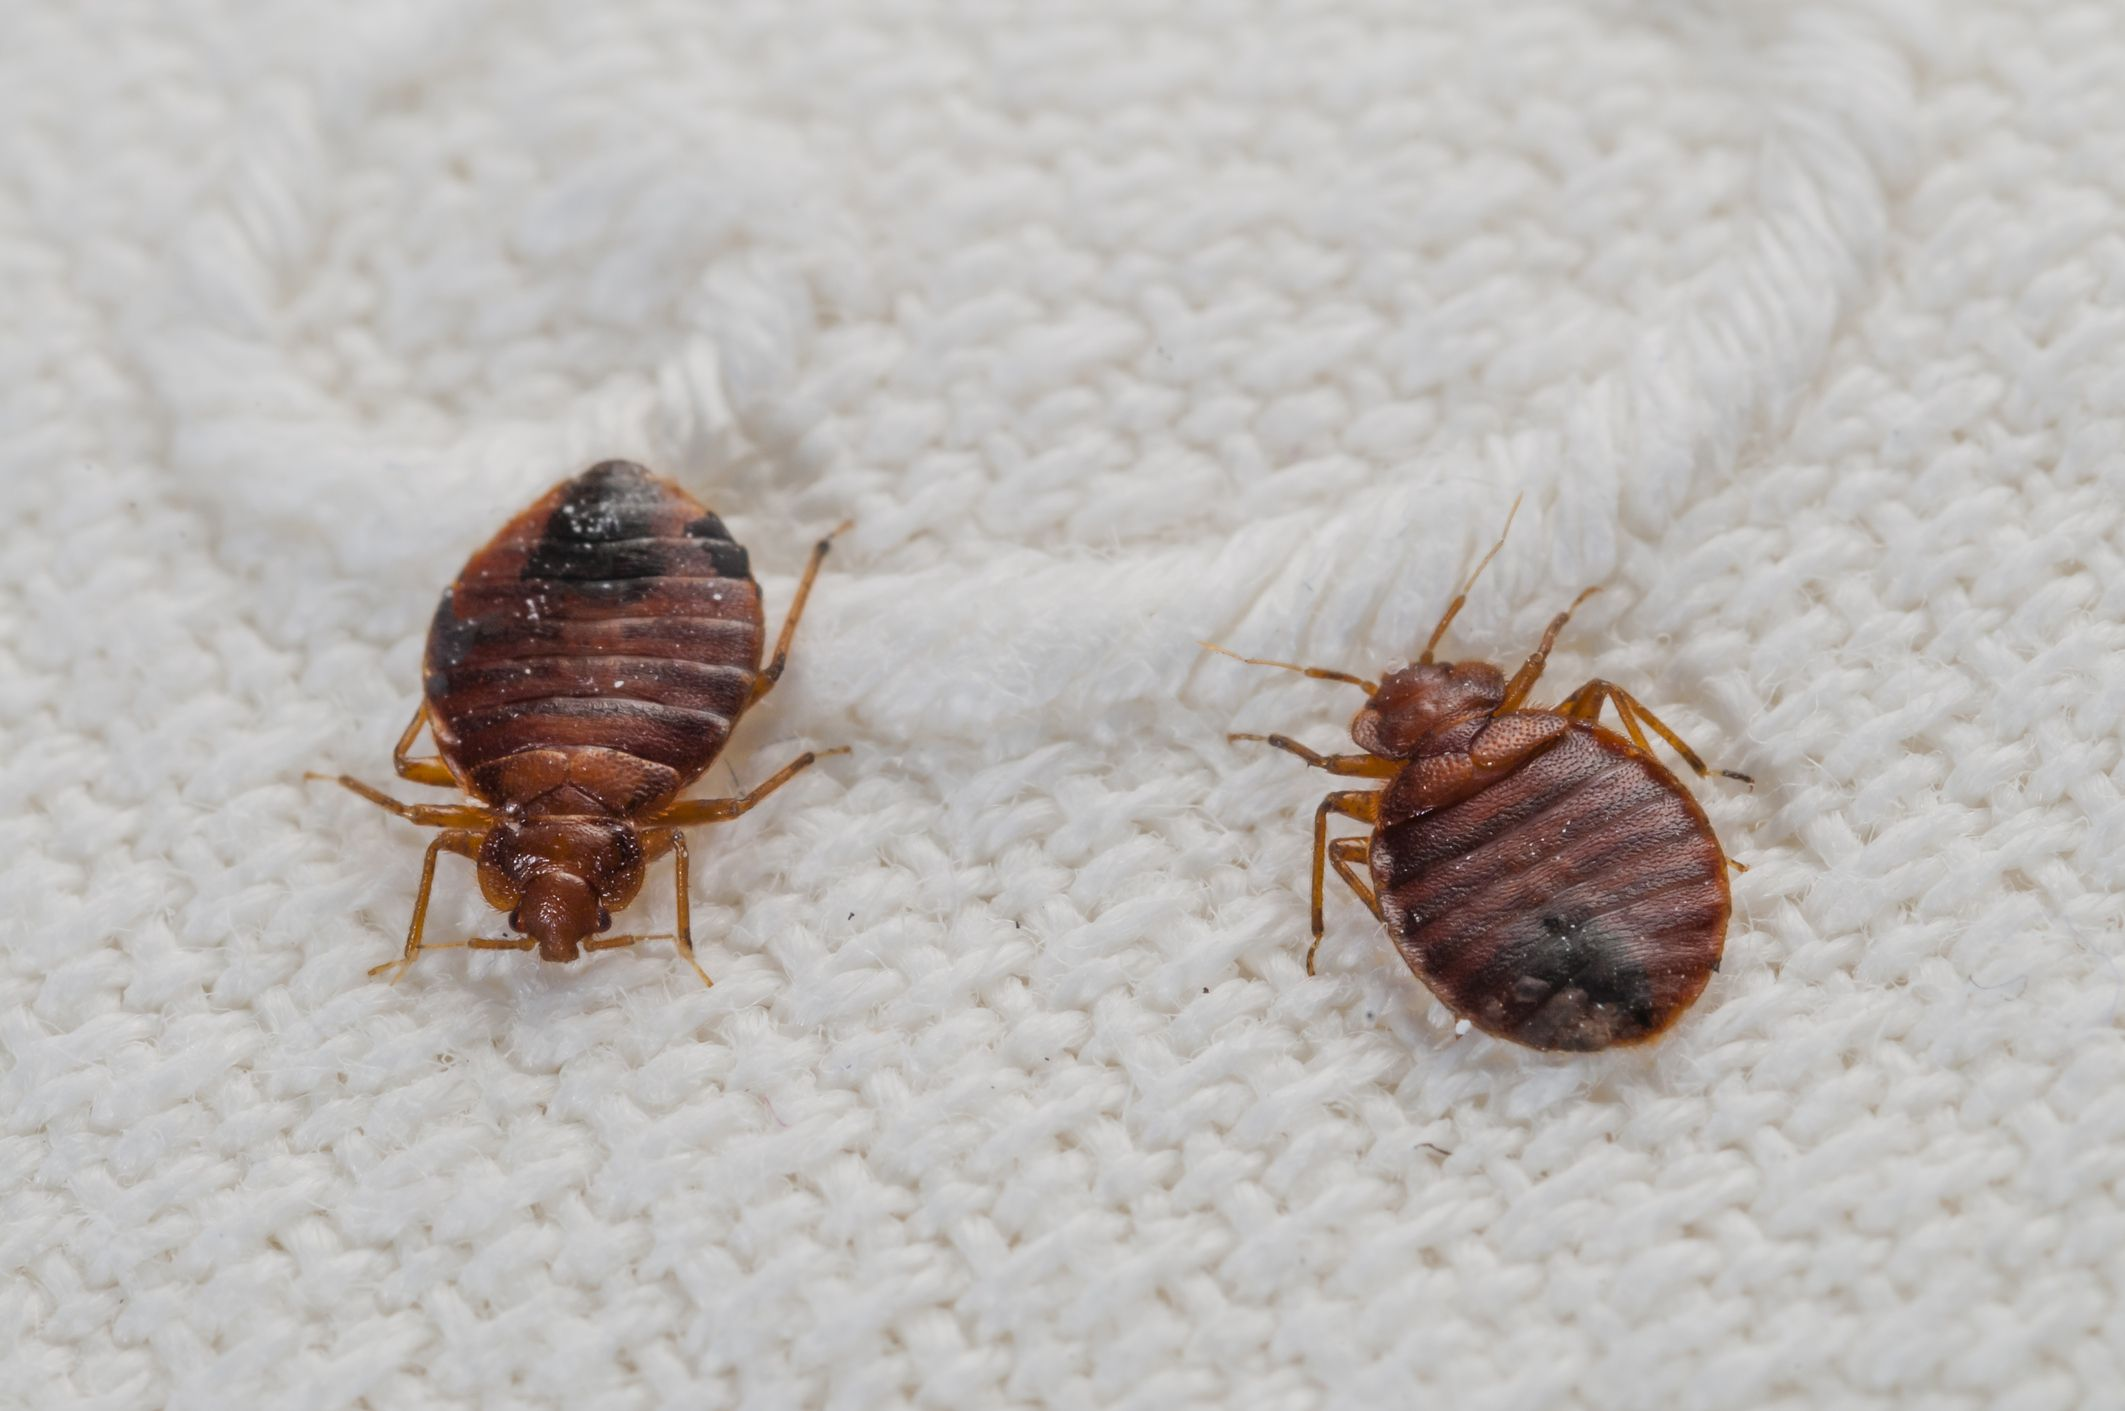 Where Do Bedbugs Come From - How to Get Rid of Bedbugs